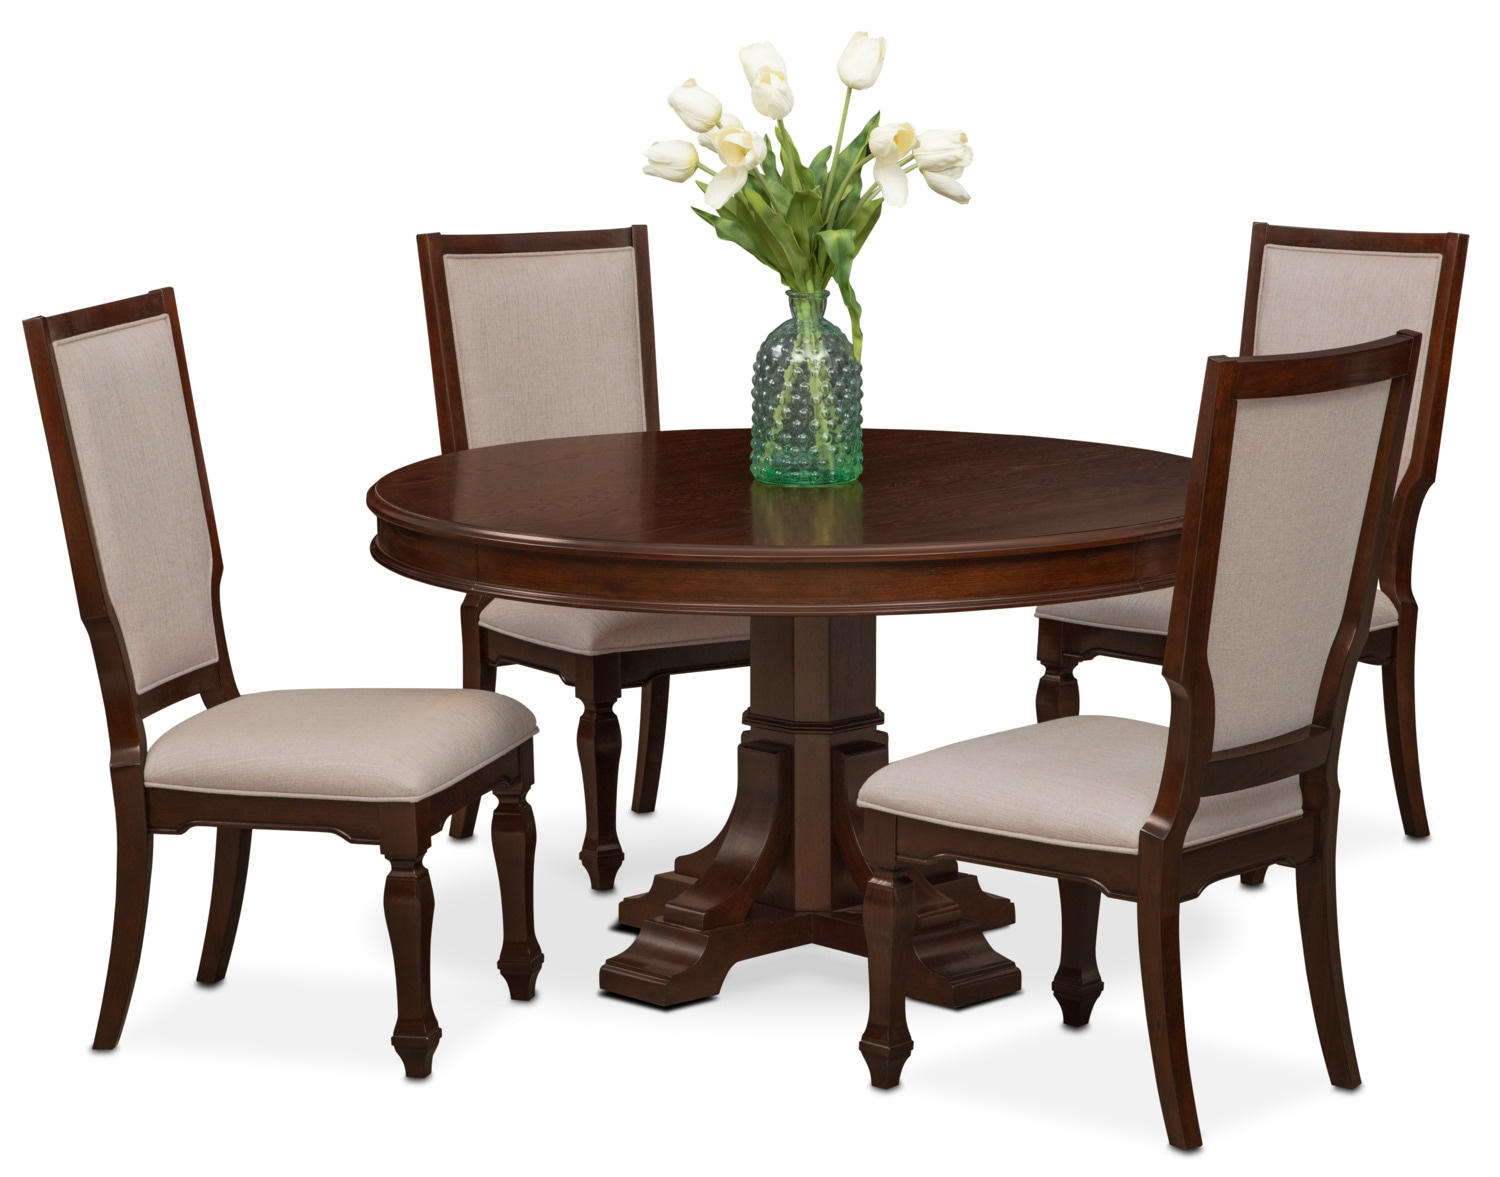 round dining tables and chairs photo - 10